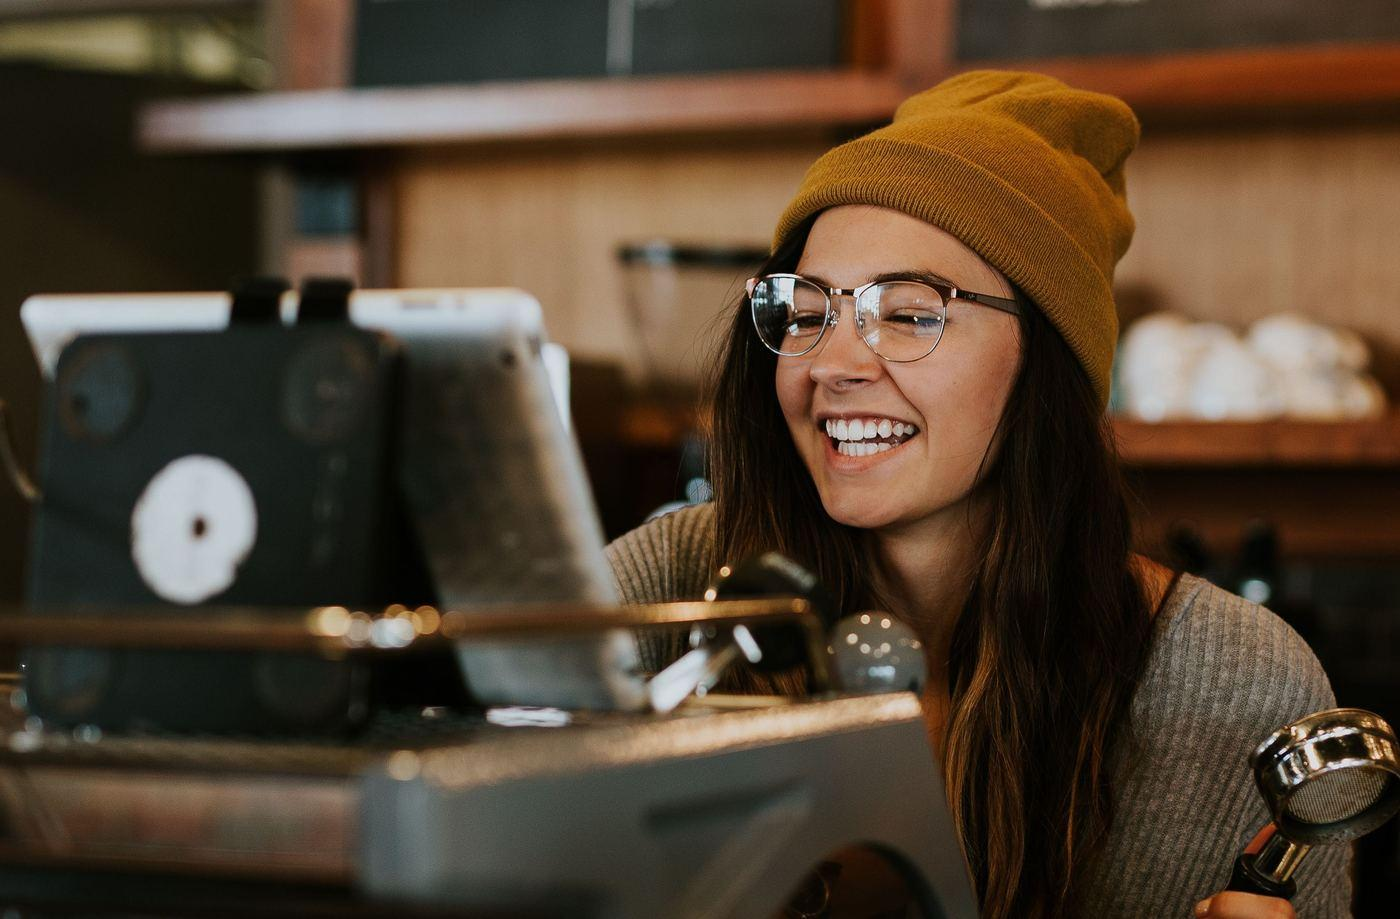 6 of the best part-time jobs for students